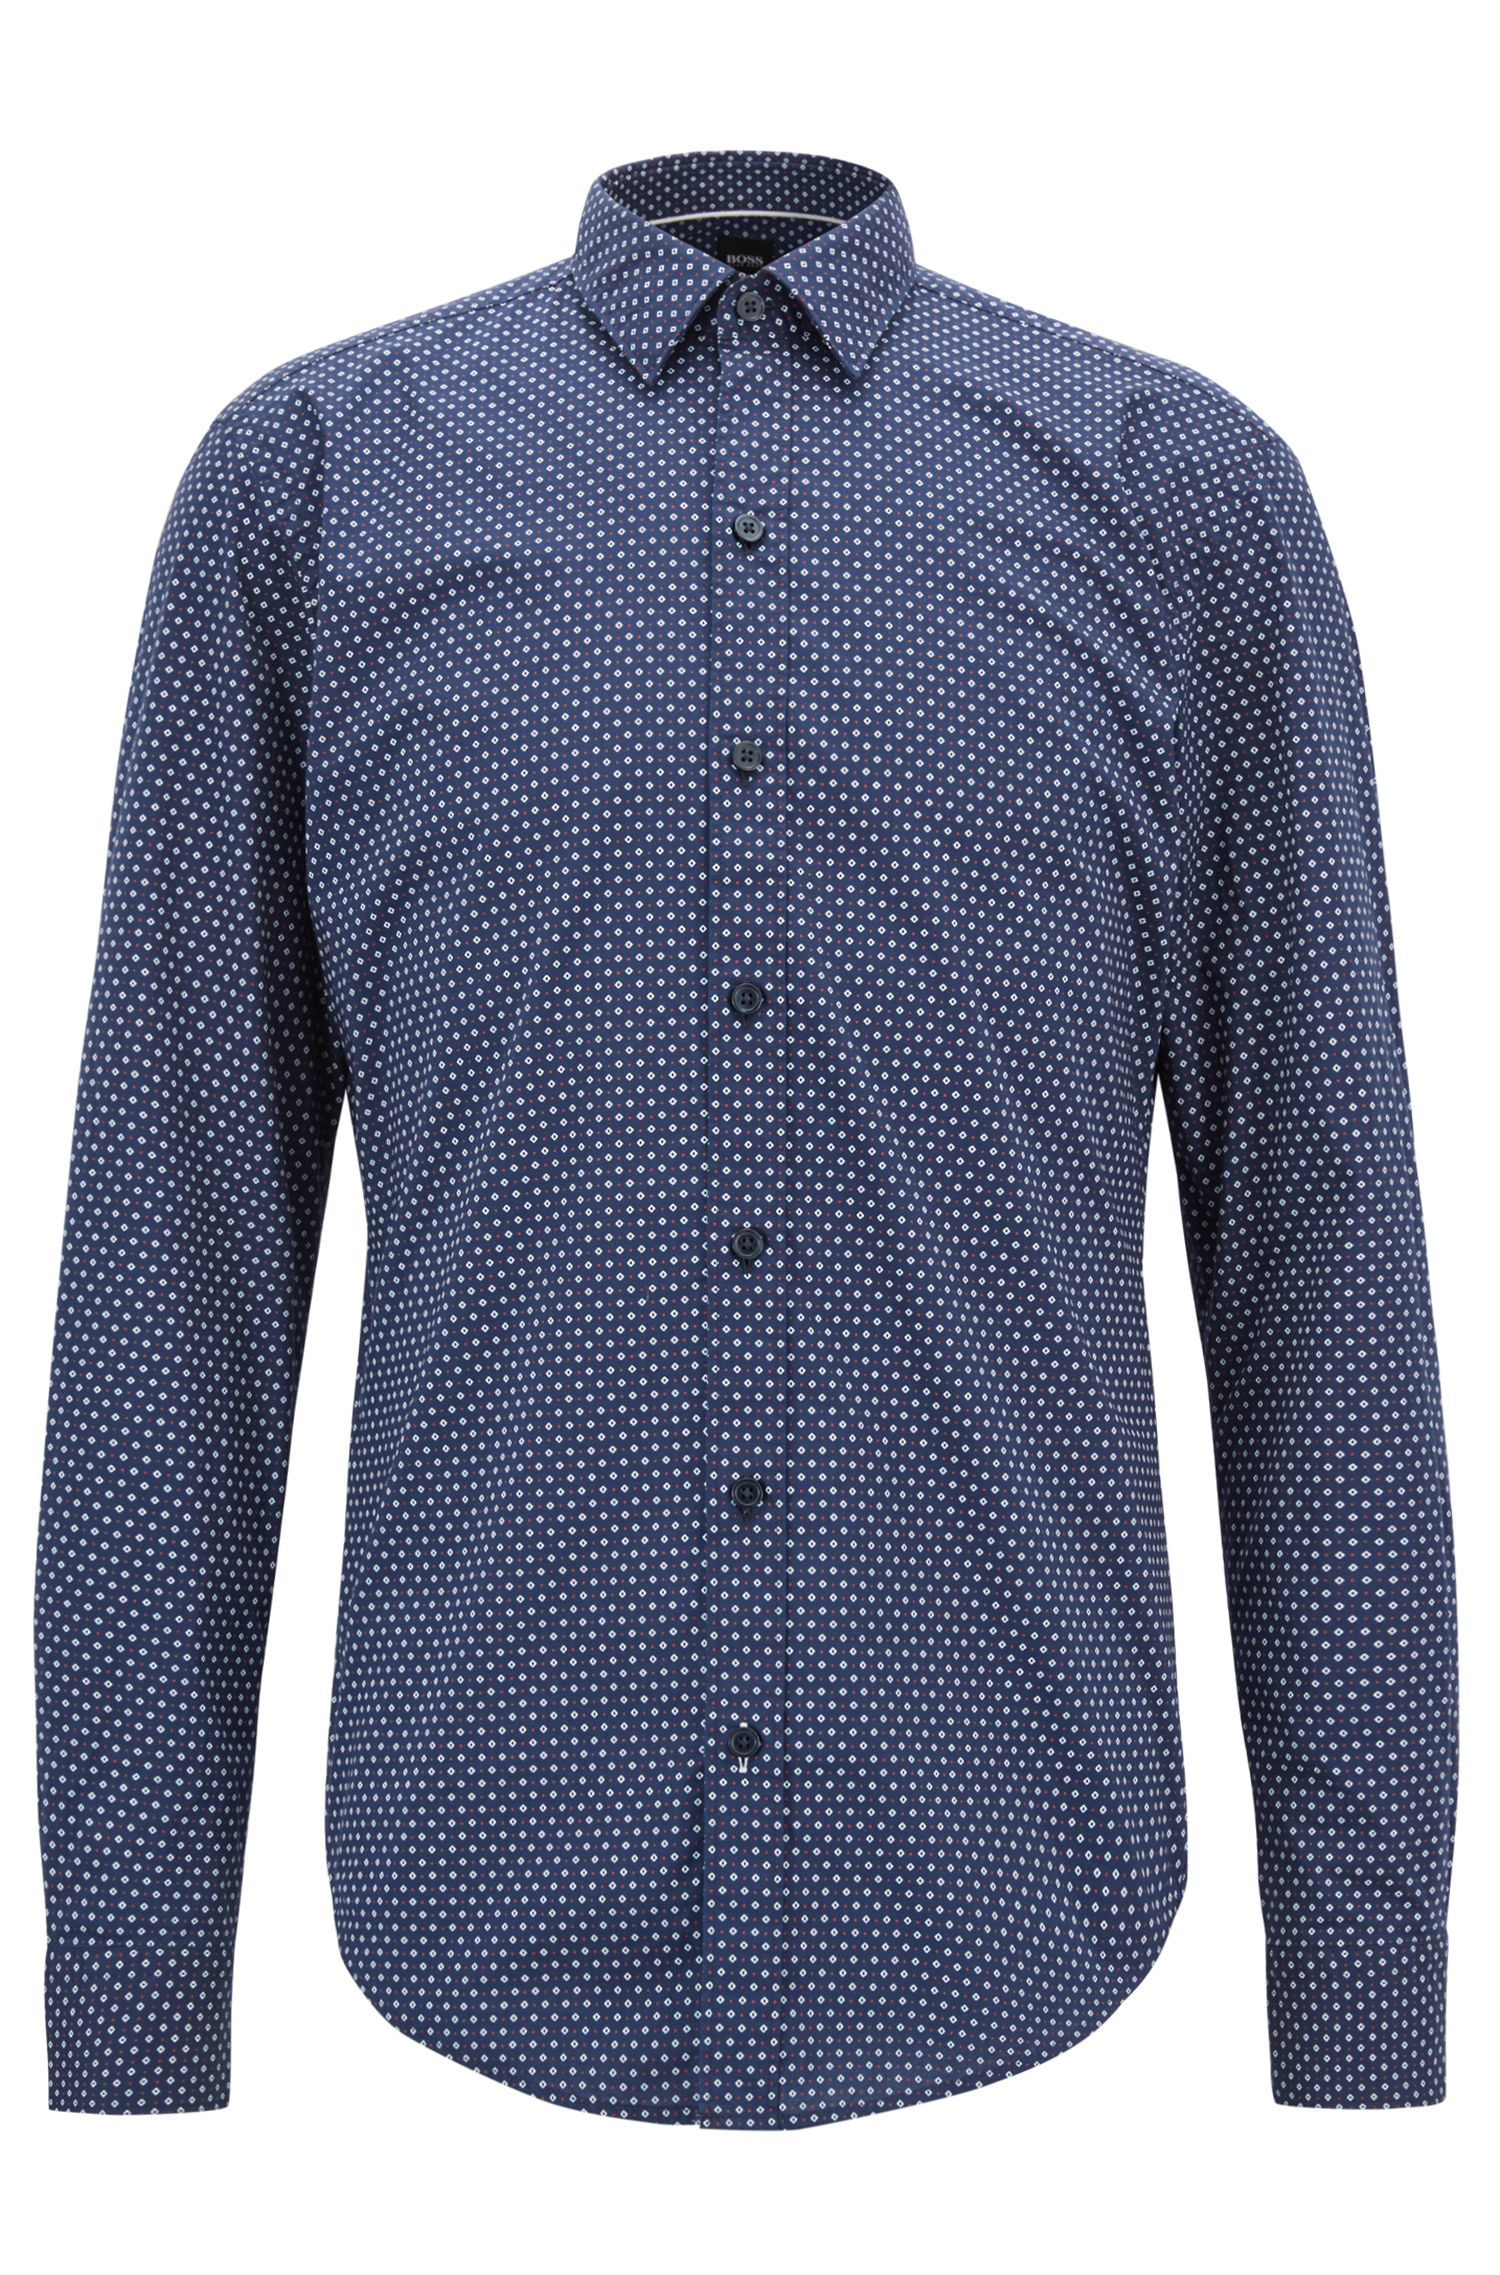 Soft Cotton Shirt, Sharp Fit | Robbie, Dark Blue